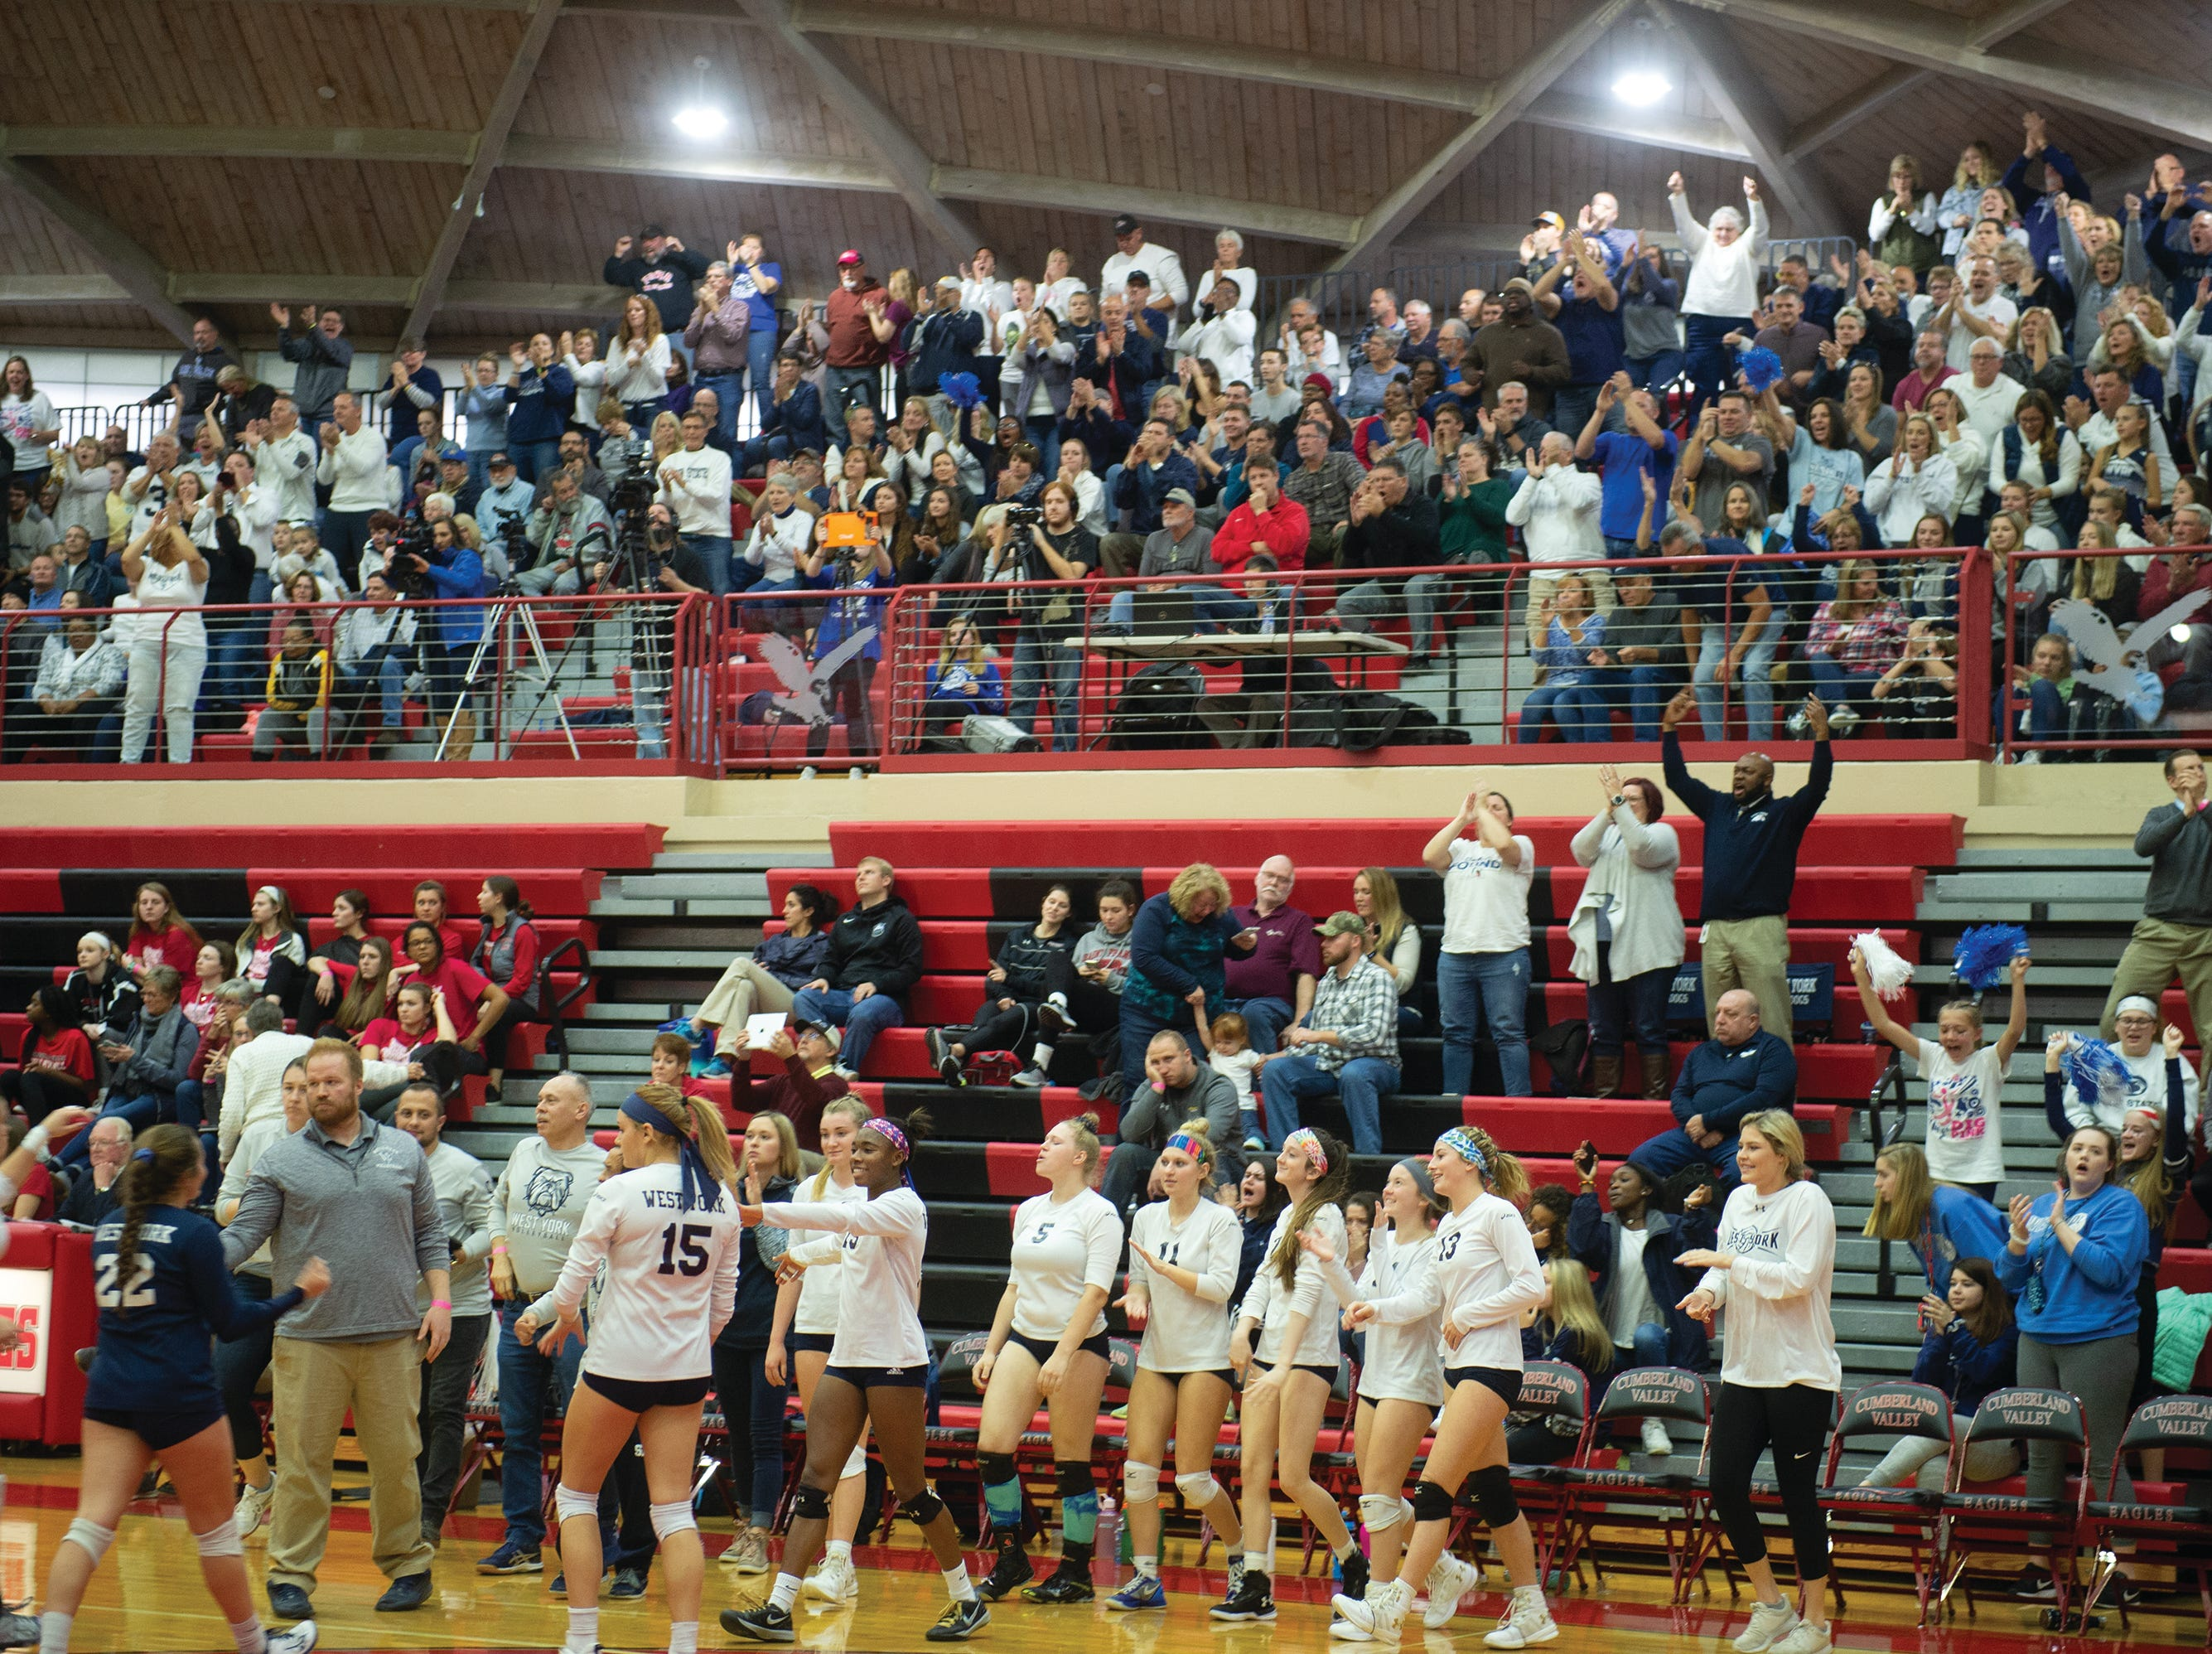 West York fans cheer as the Bulldogs come to the bench for the final timeout of Saturday's PIAA Class 3A girls' volleyball championship. West York defeated Warren 3-0.